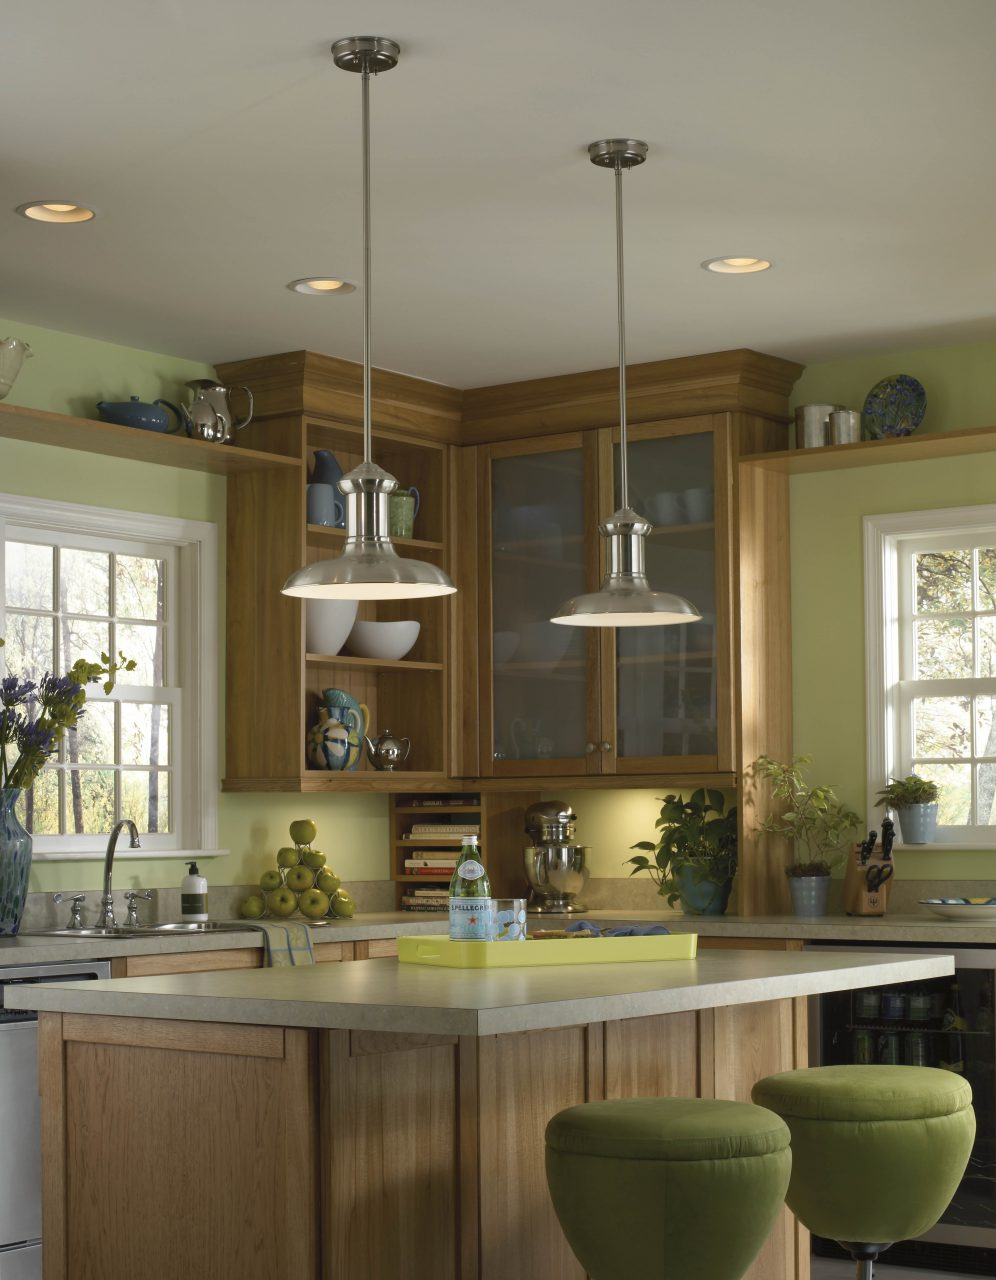 Led Pendant Lighting For Kitchen Island Pendant Design Ideas